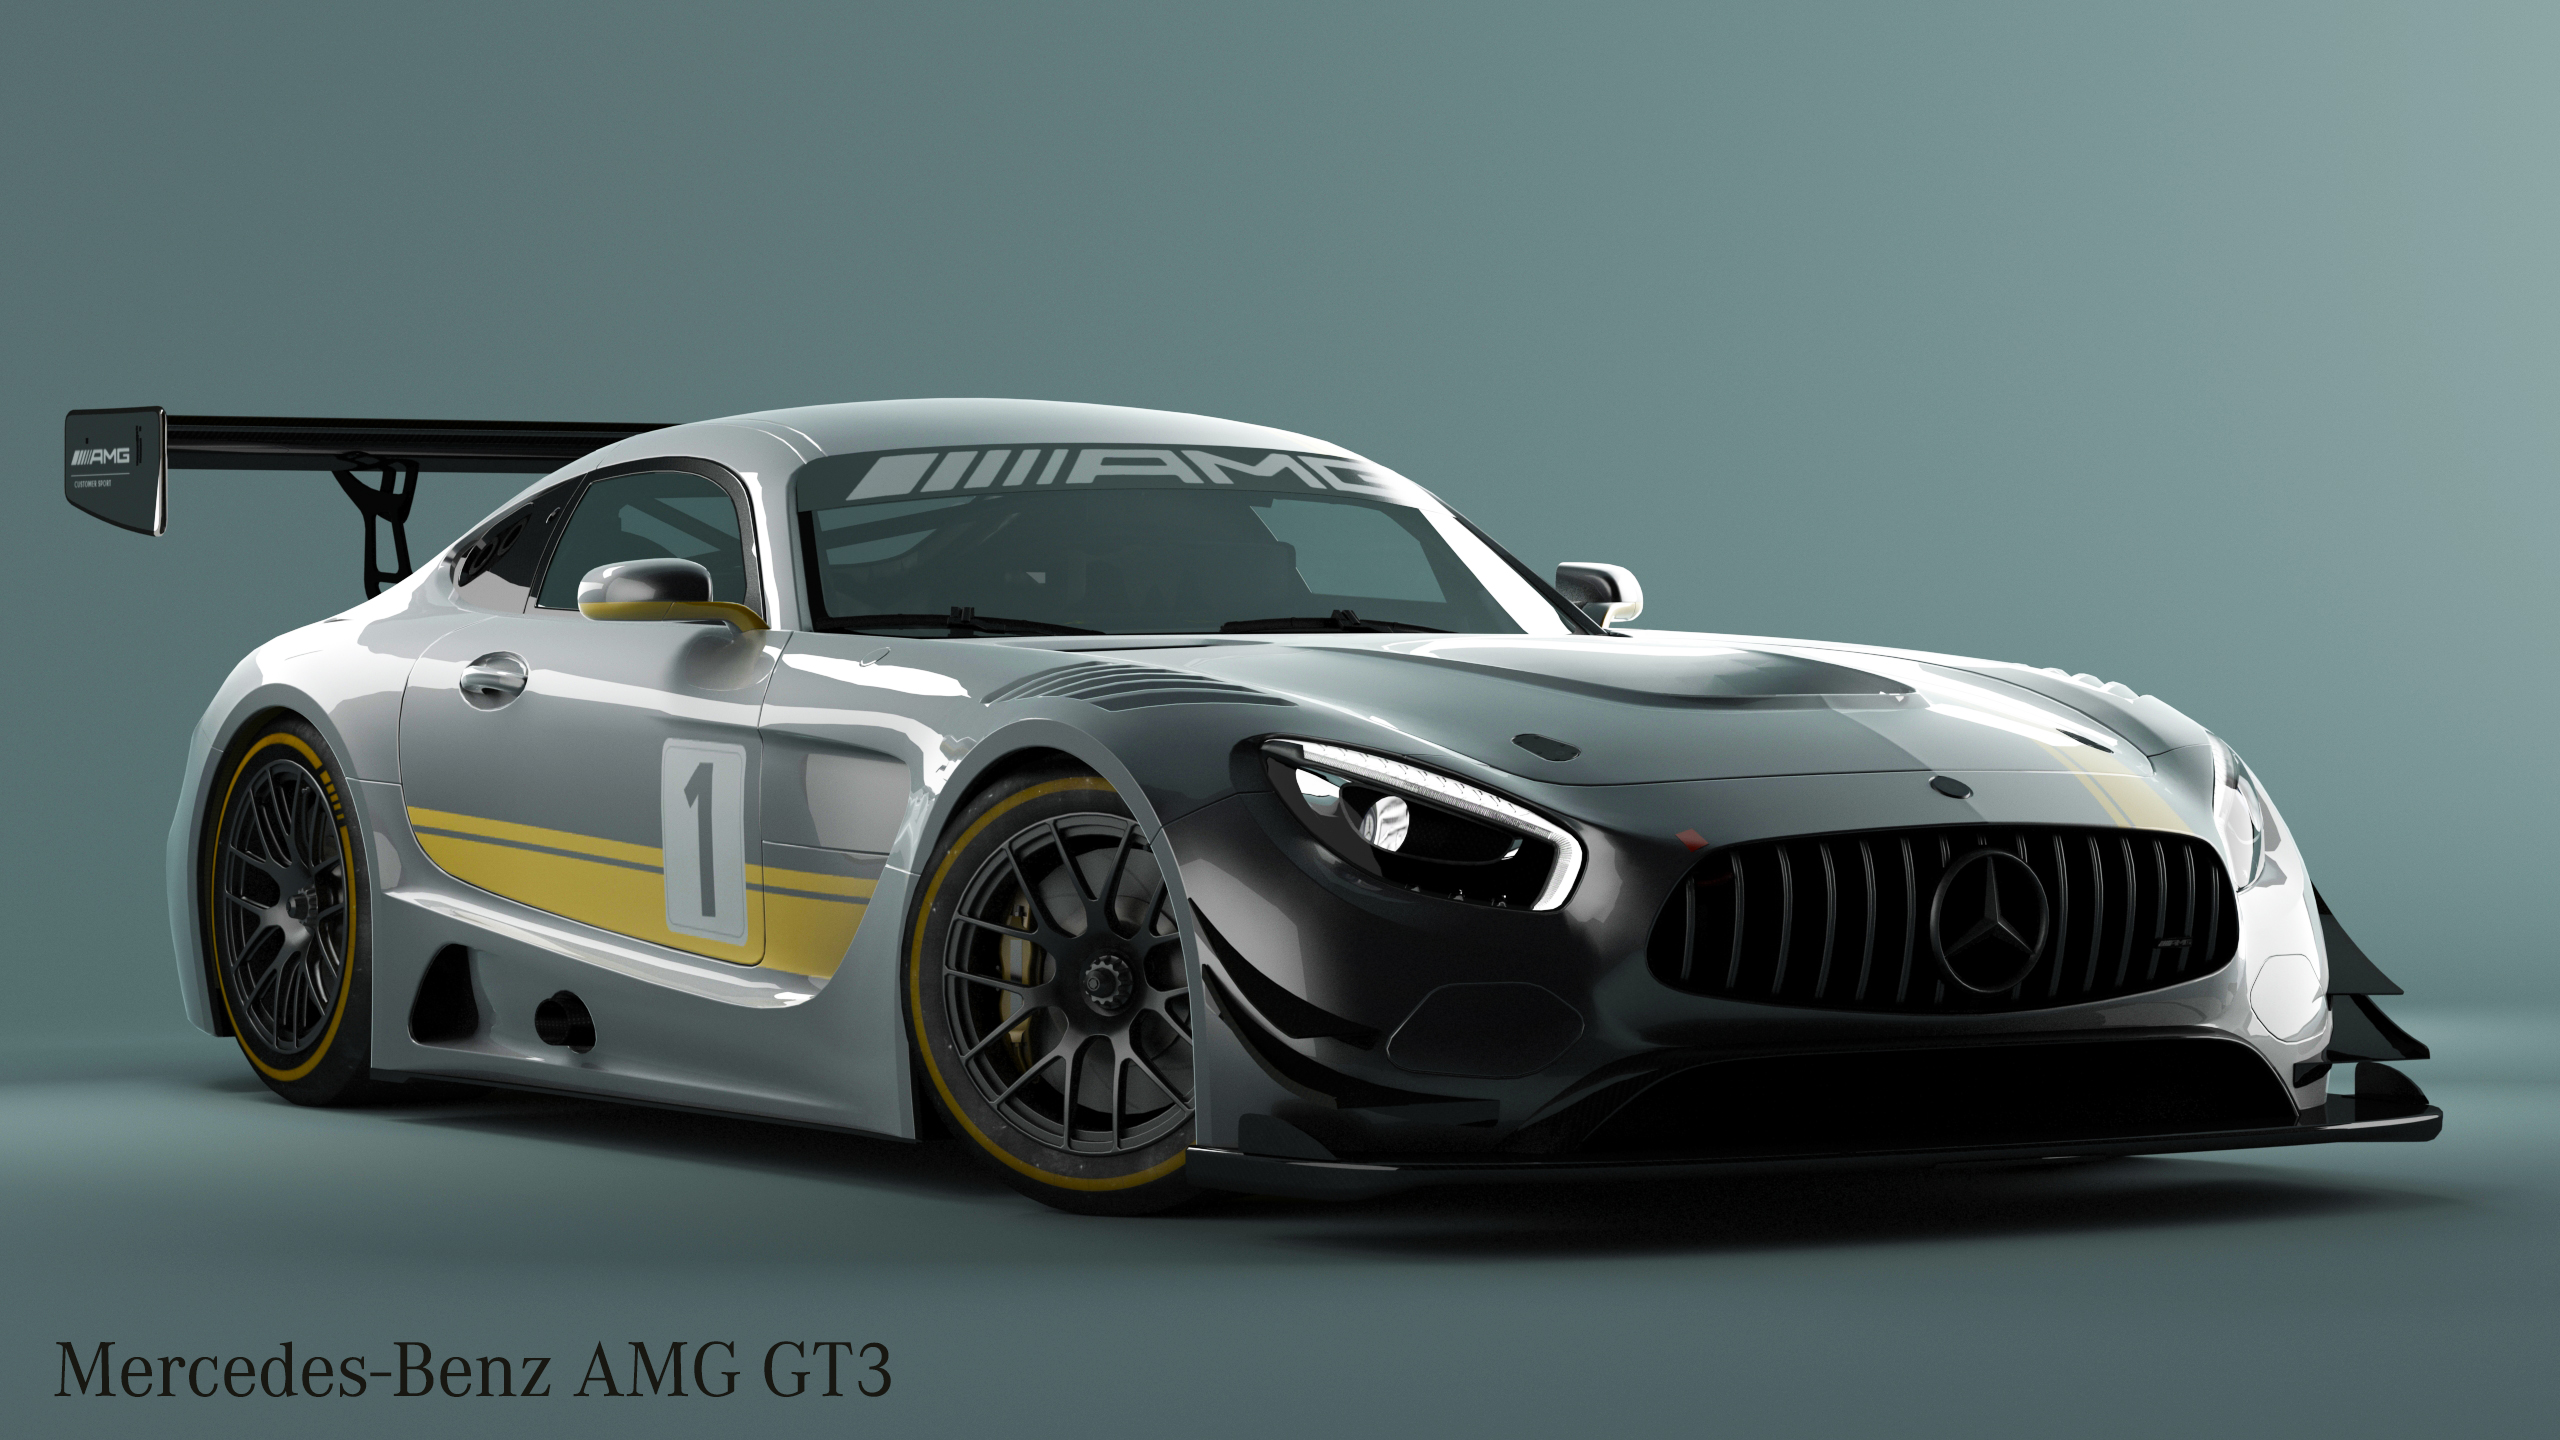 2016 mercedes benz amg gt3 by nancorocks on deviantart. Black Bedroom Furniture Sets. Home Design Ideas